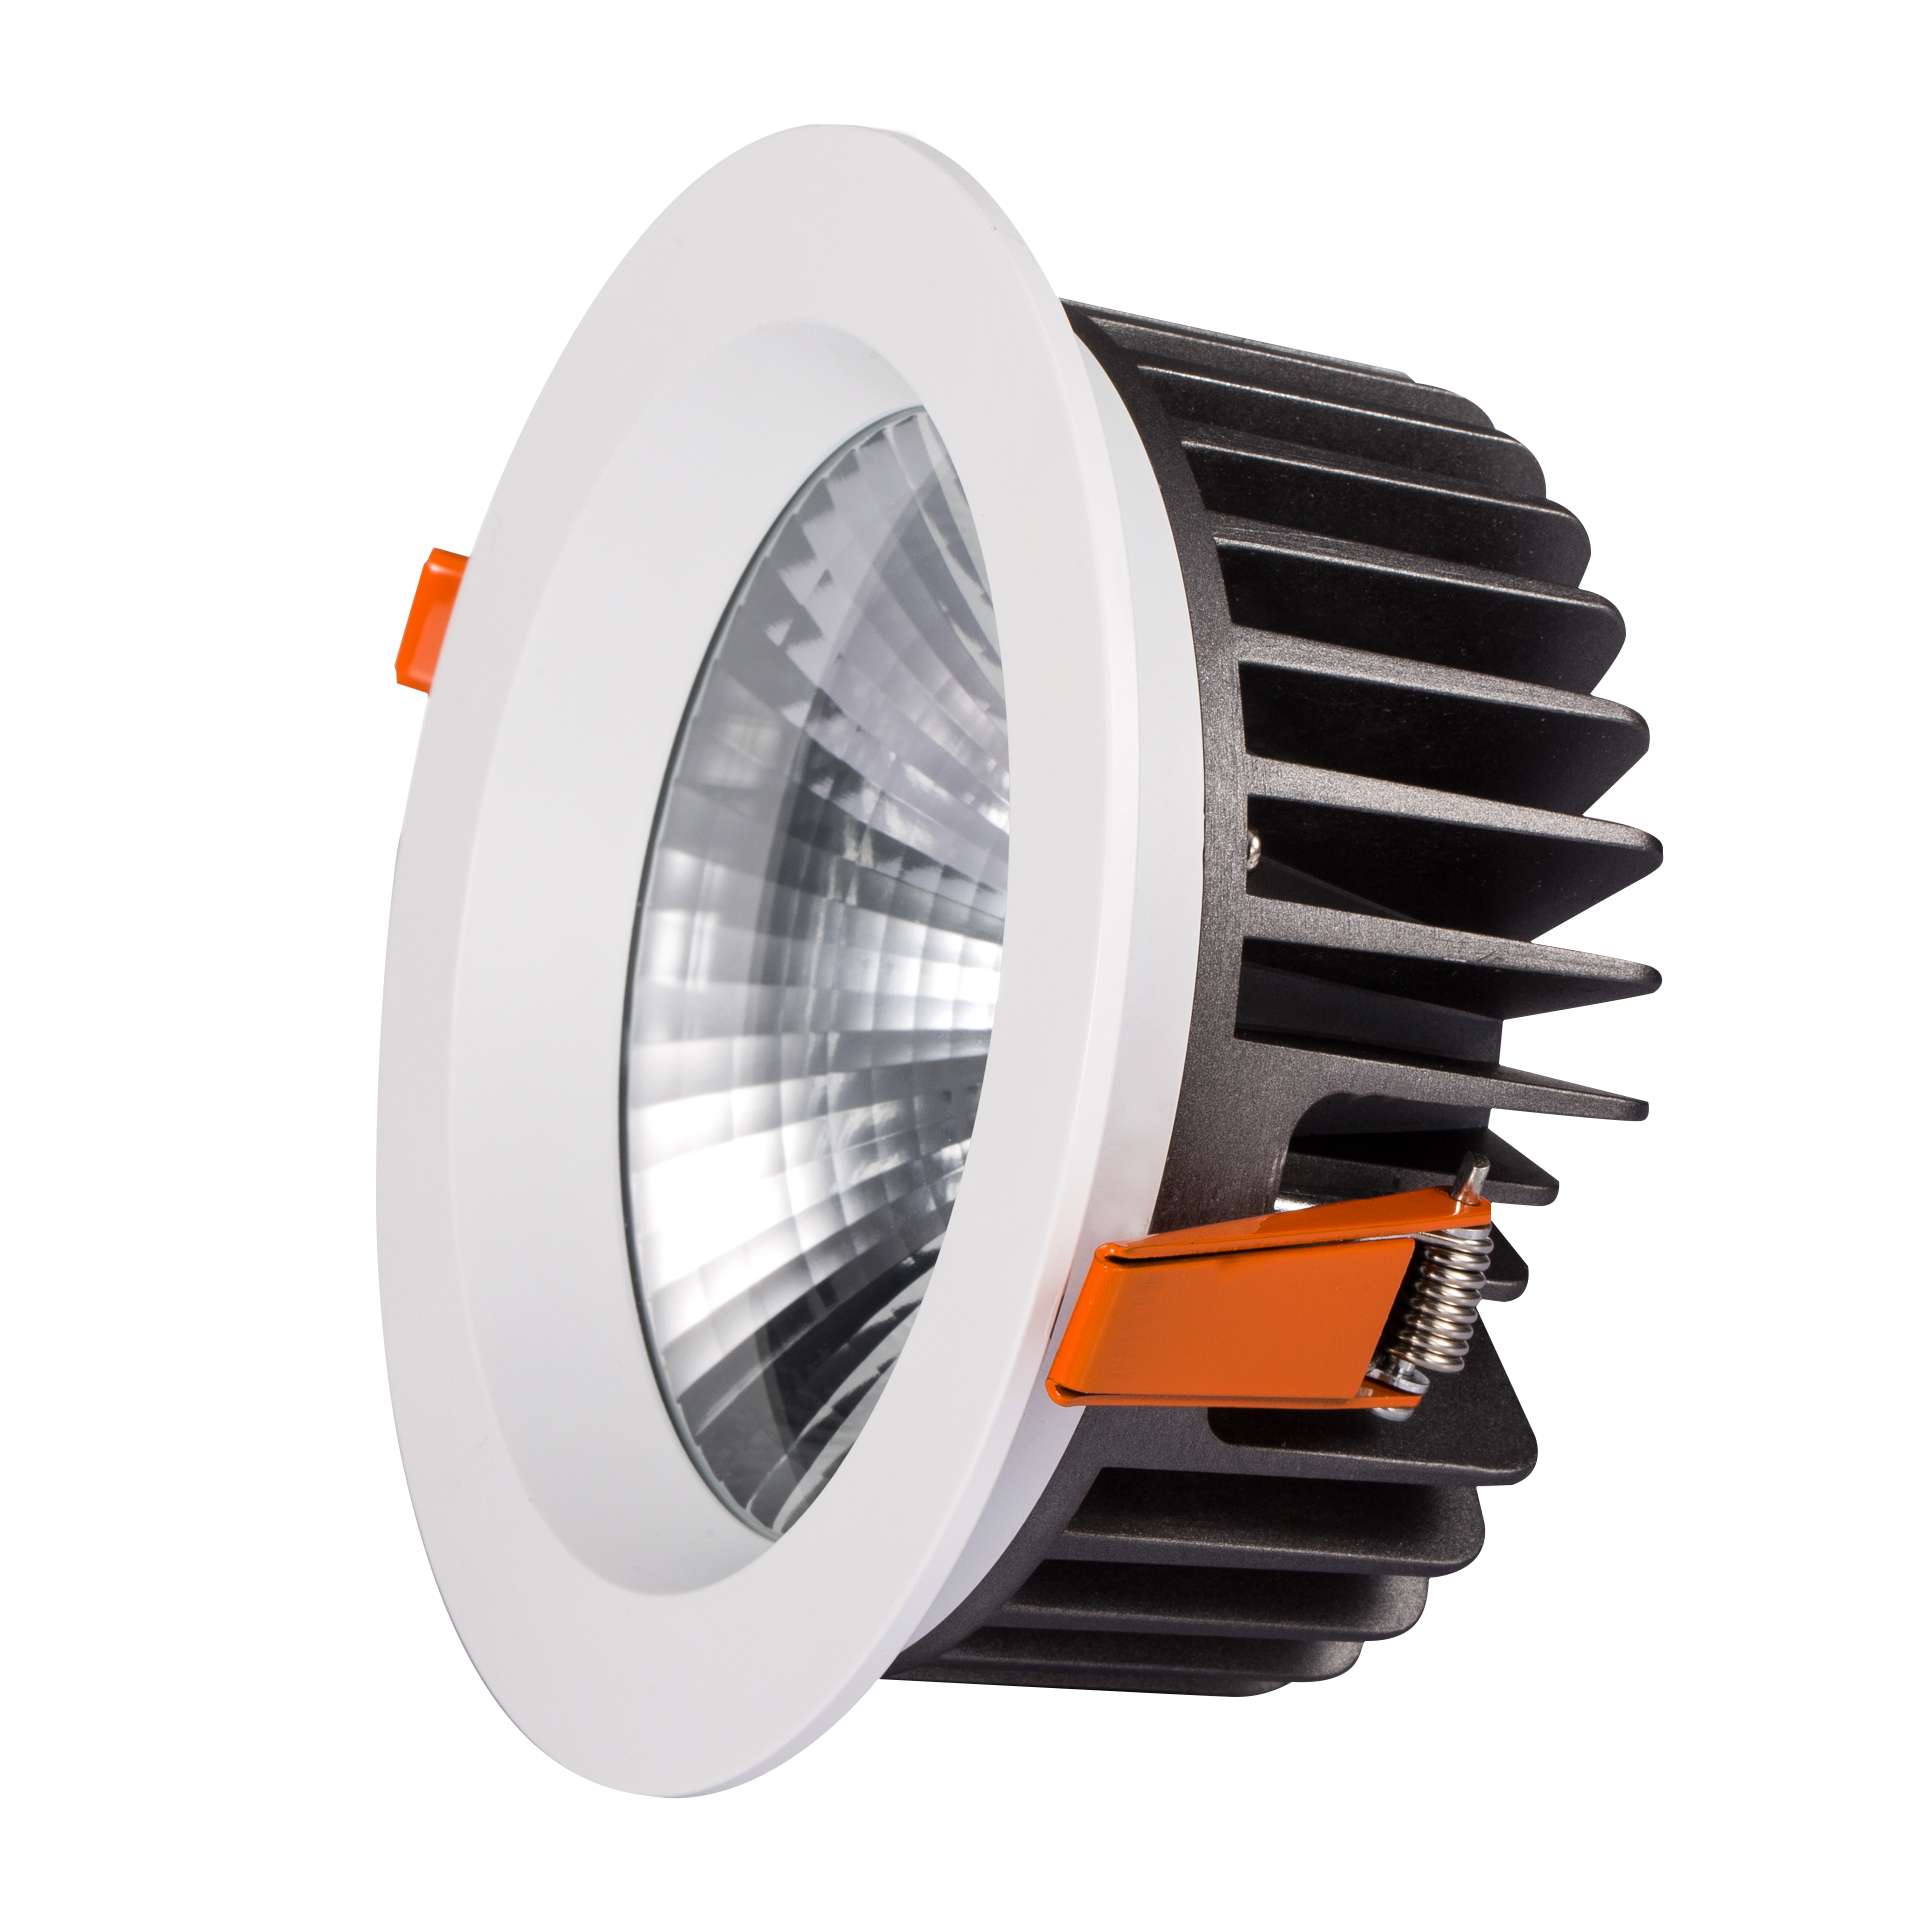 4inch 15-20W X5 Series LED Downlight